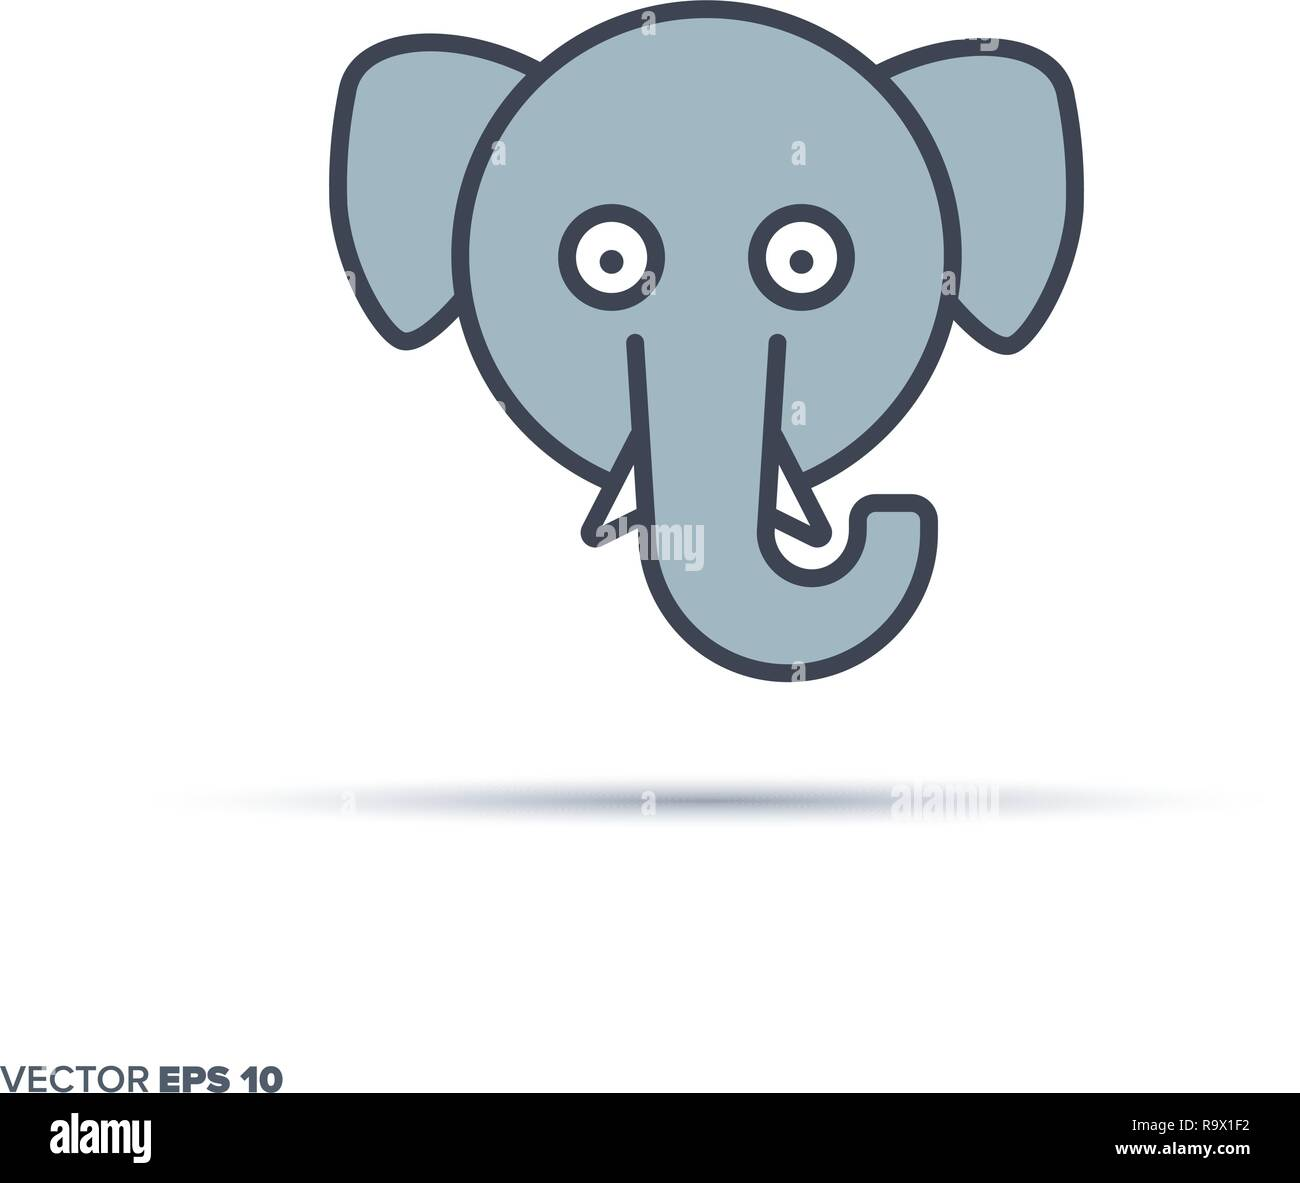 Cute Elephant Face Outline Vector Icon With Color Fill Funny Animal Illustration Stock Vector Image Art Alamy